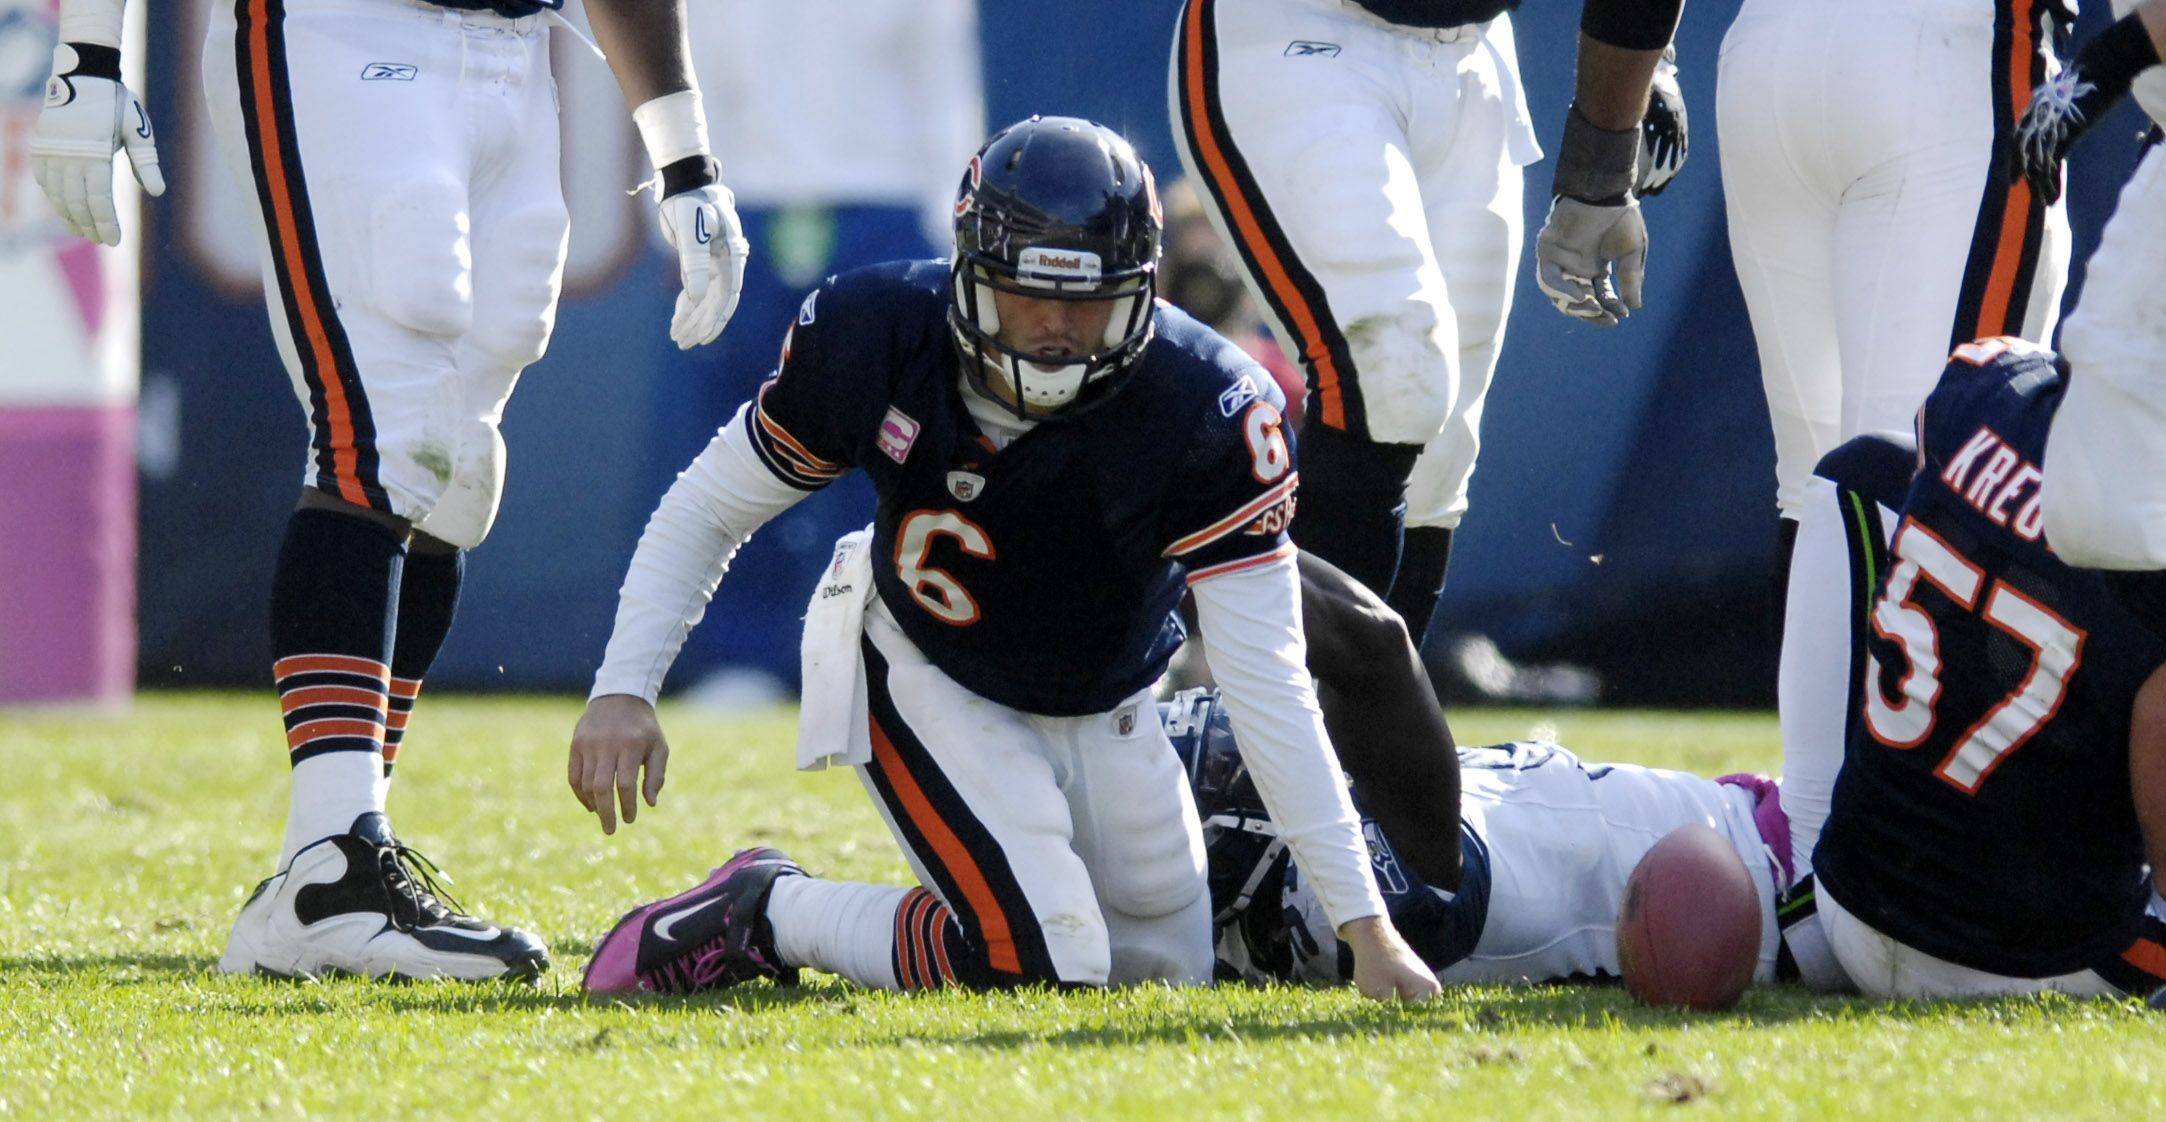 RICK WEST/rwest@dailyherald.comChicago Bears quarterback Jay Cutler gets up slowly after a sack.